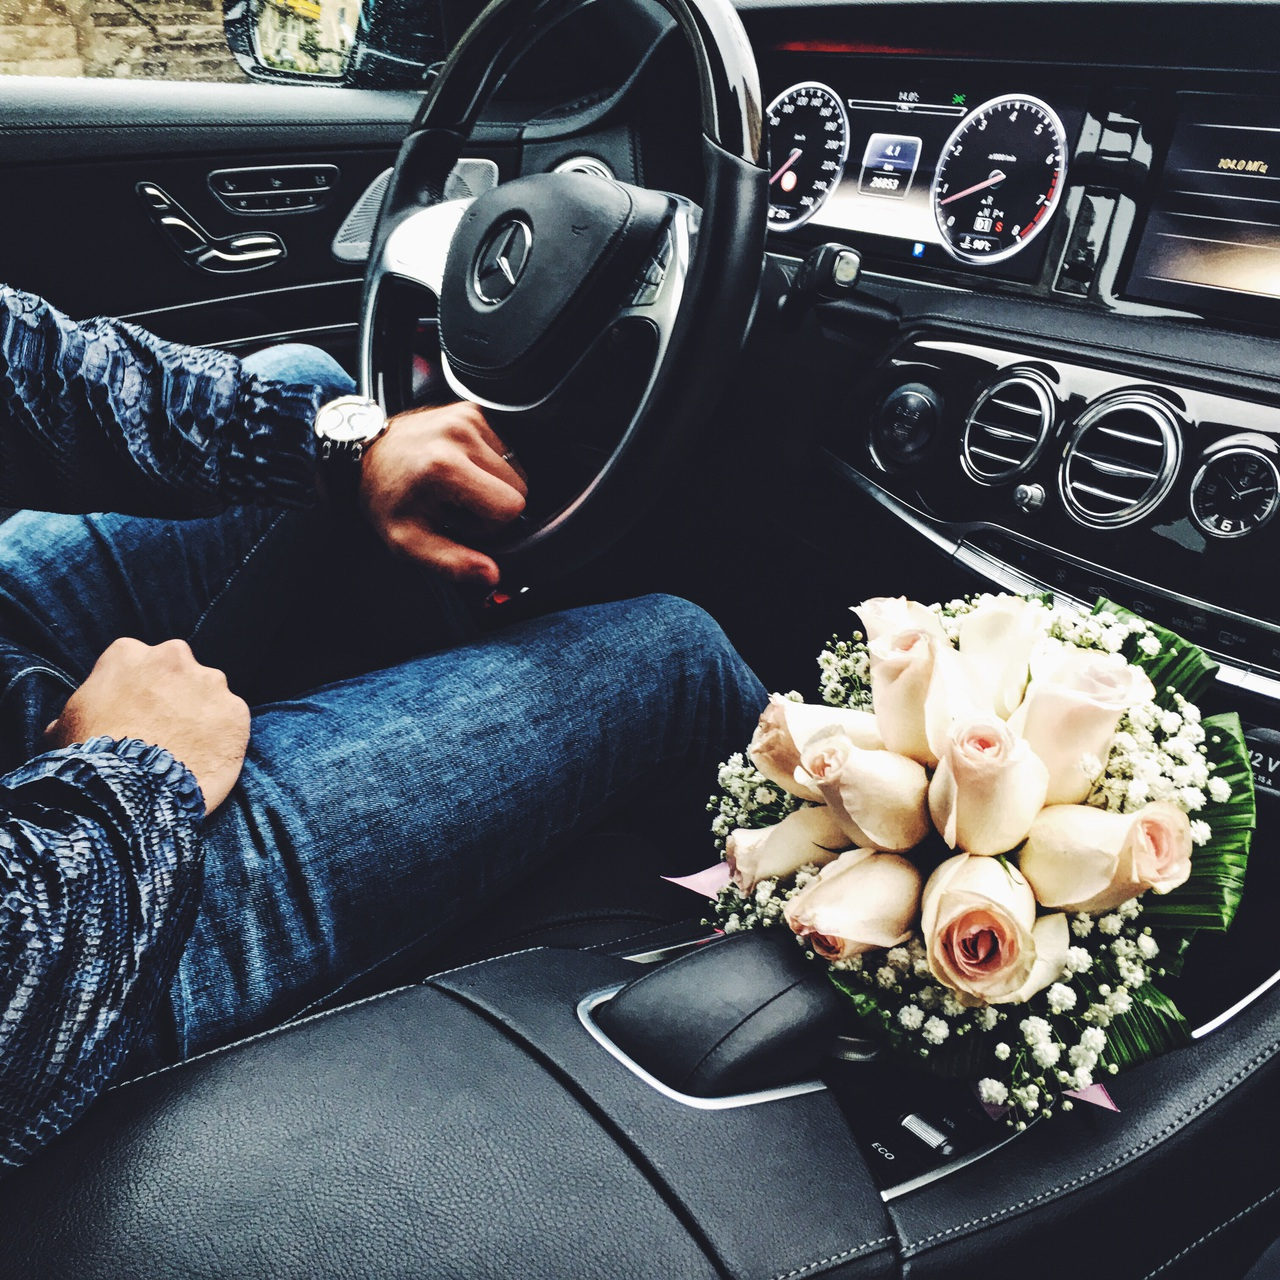 couple singing in car relationship goals pics